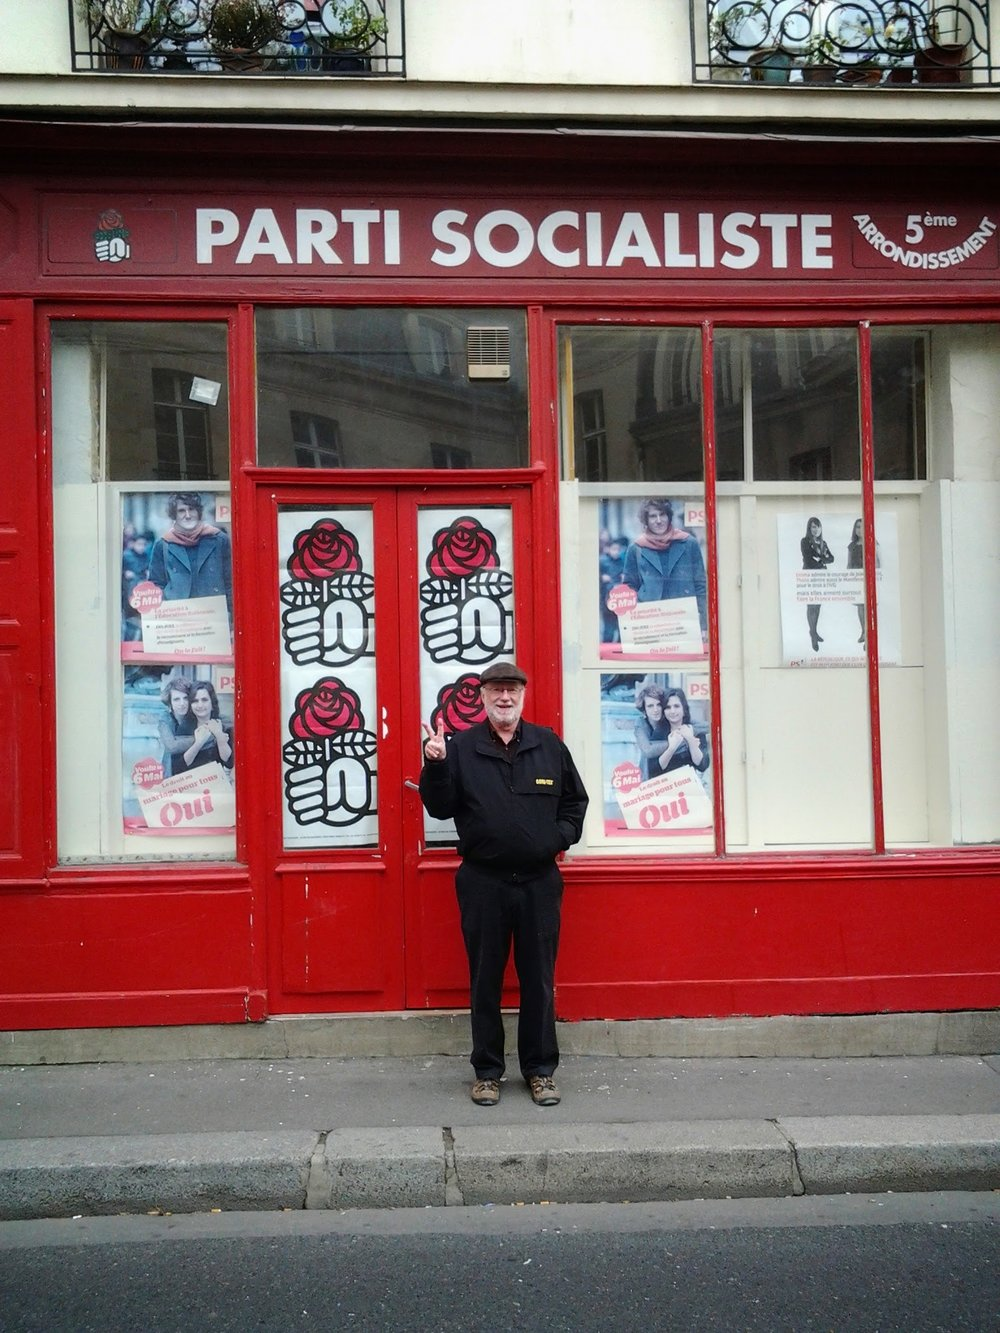 I've always had a thing for French radical politics...